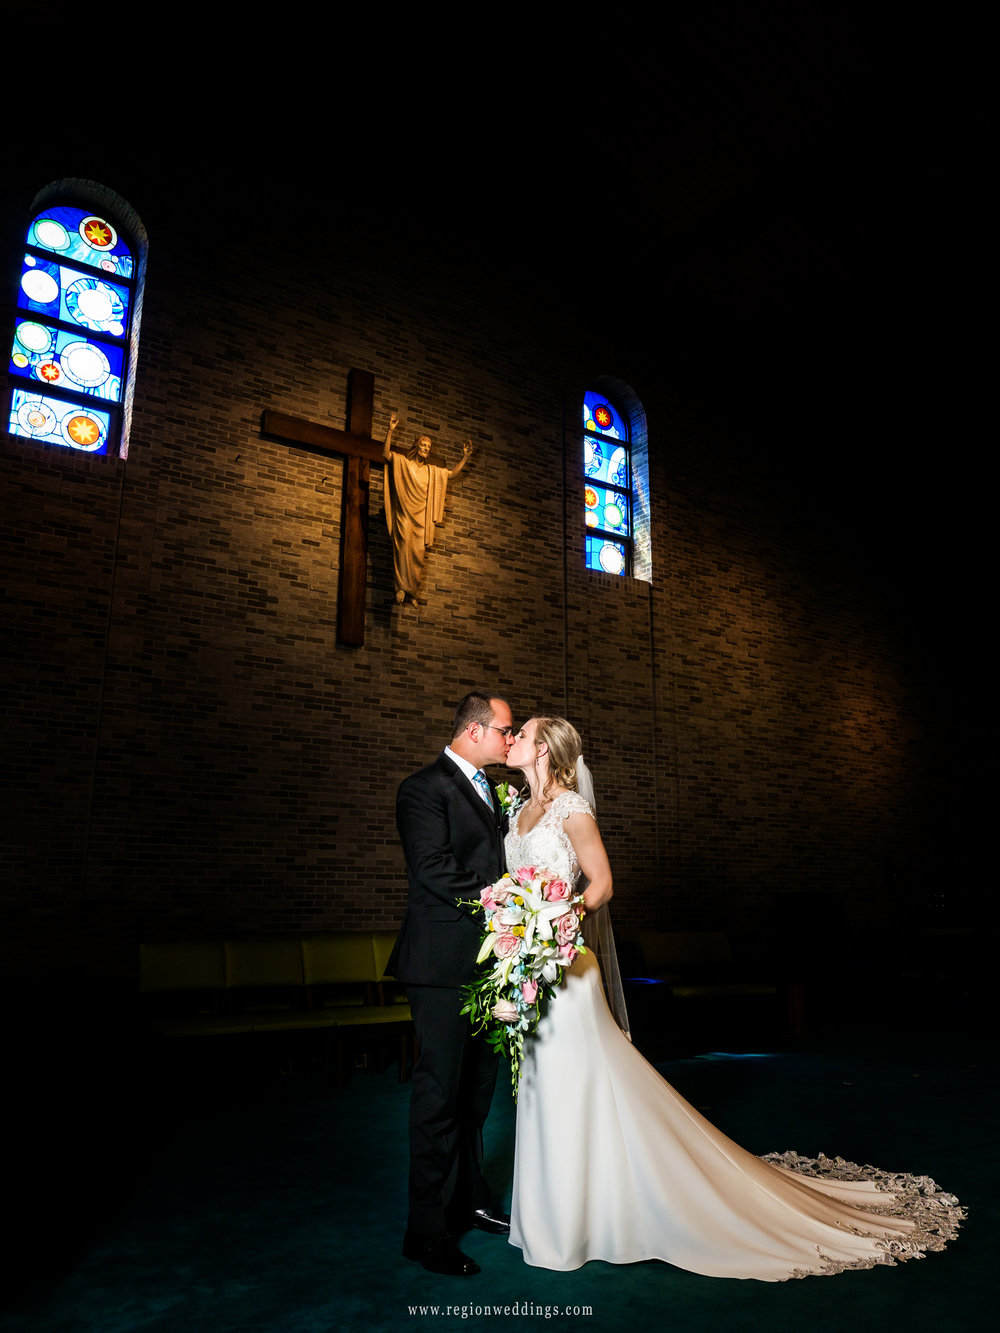 Stained glass windows overlook the bride and groom for their church wedding photos.